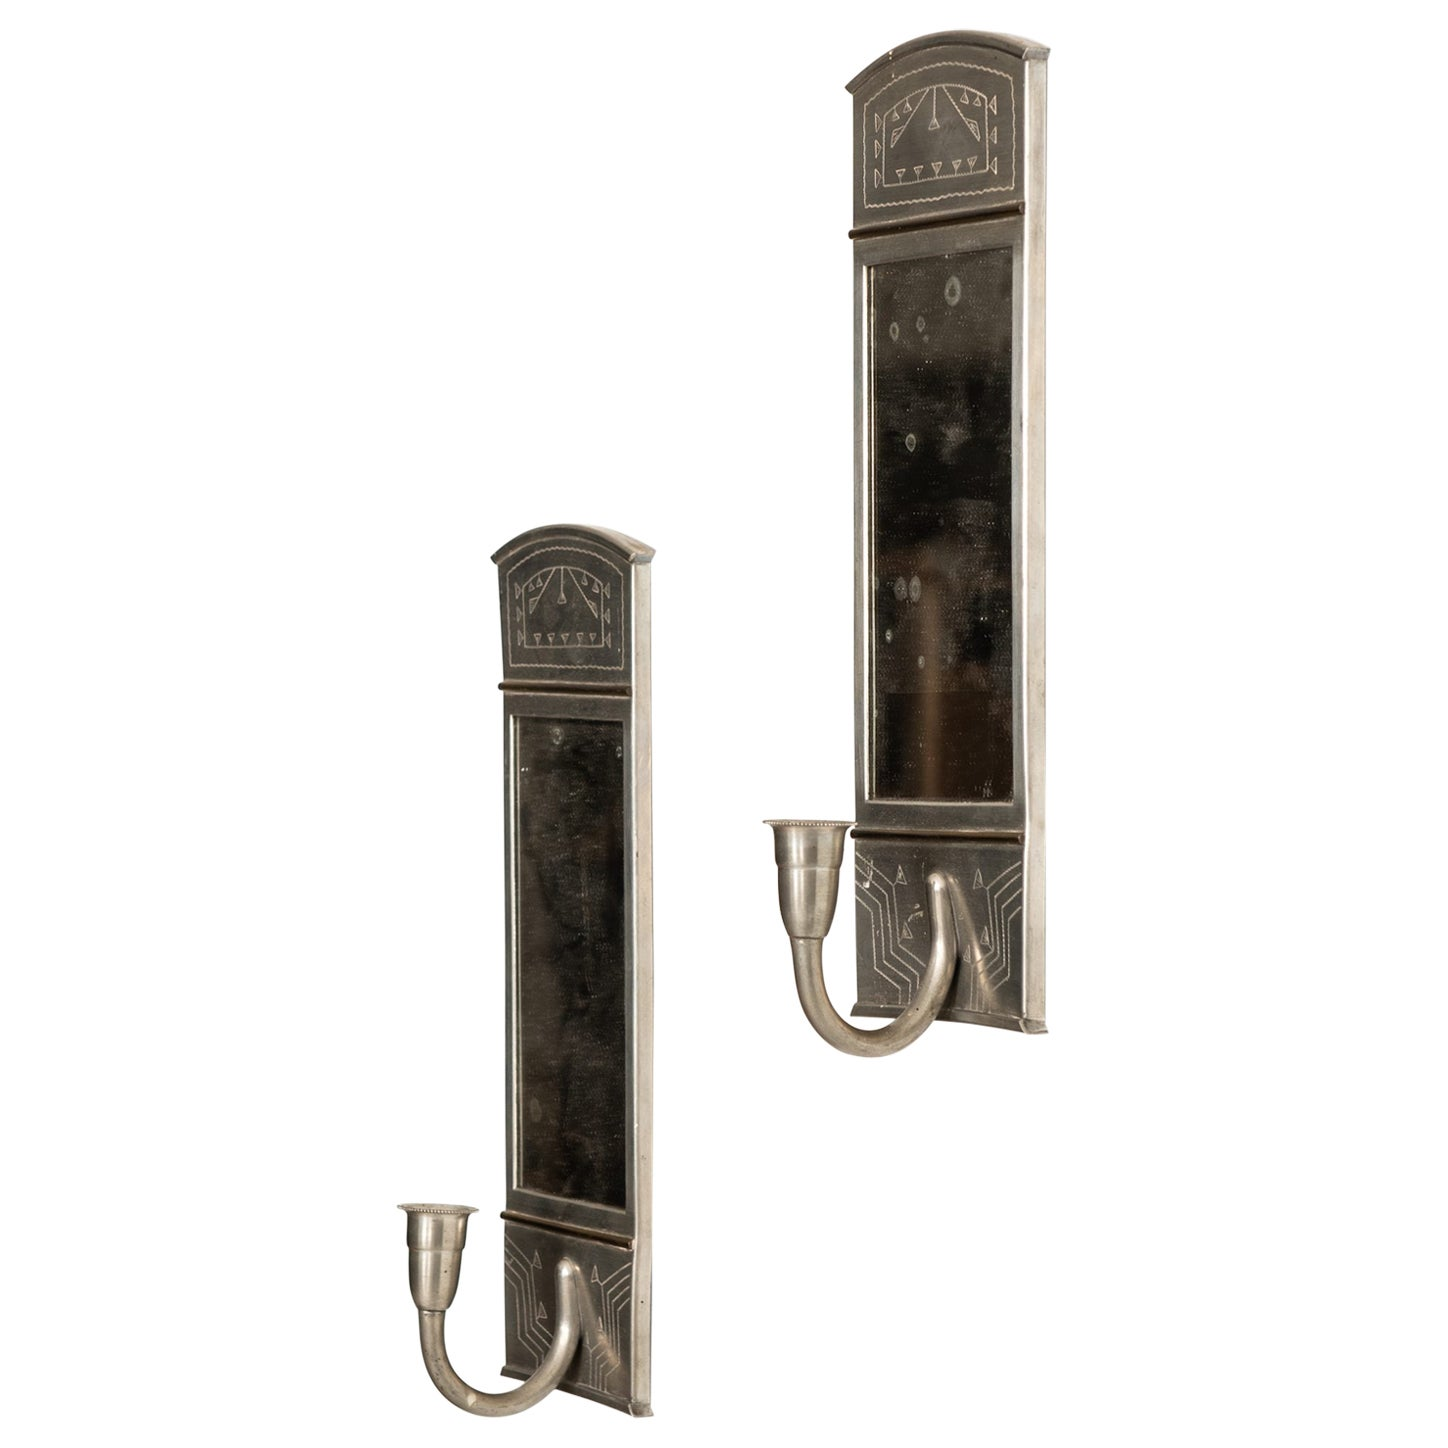 Wall Candlesticks Produced by Rudolf Zibell Metallvarufabrik in Eskilstuna